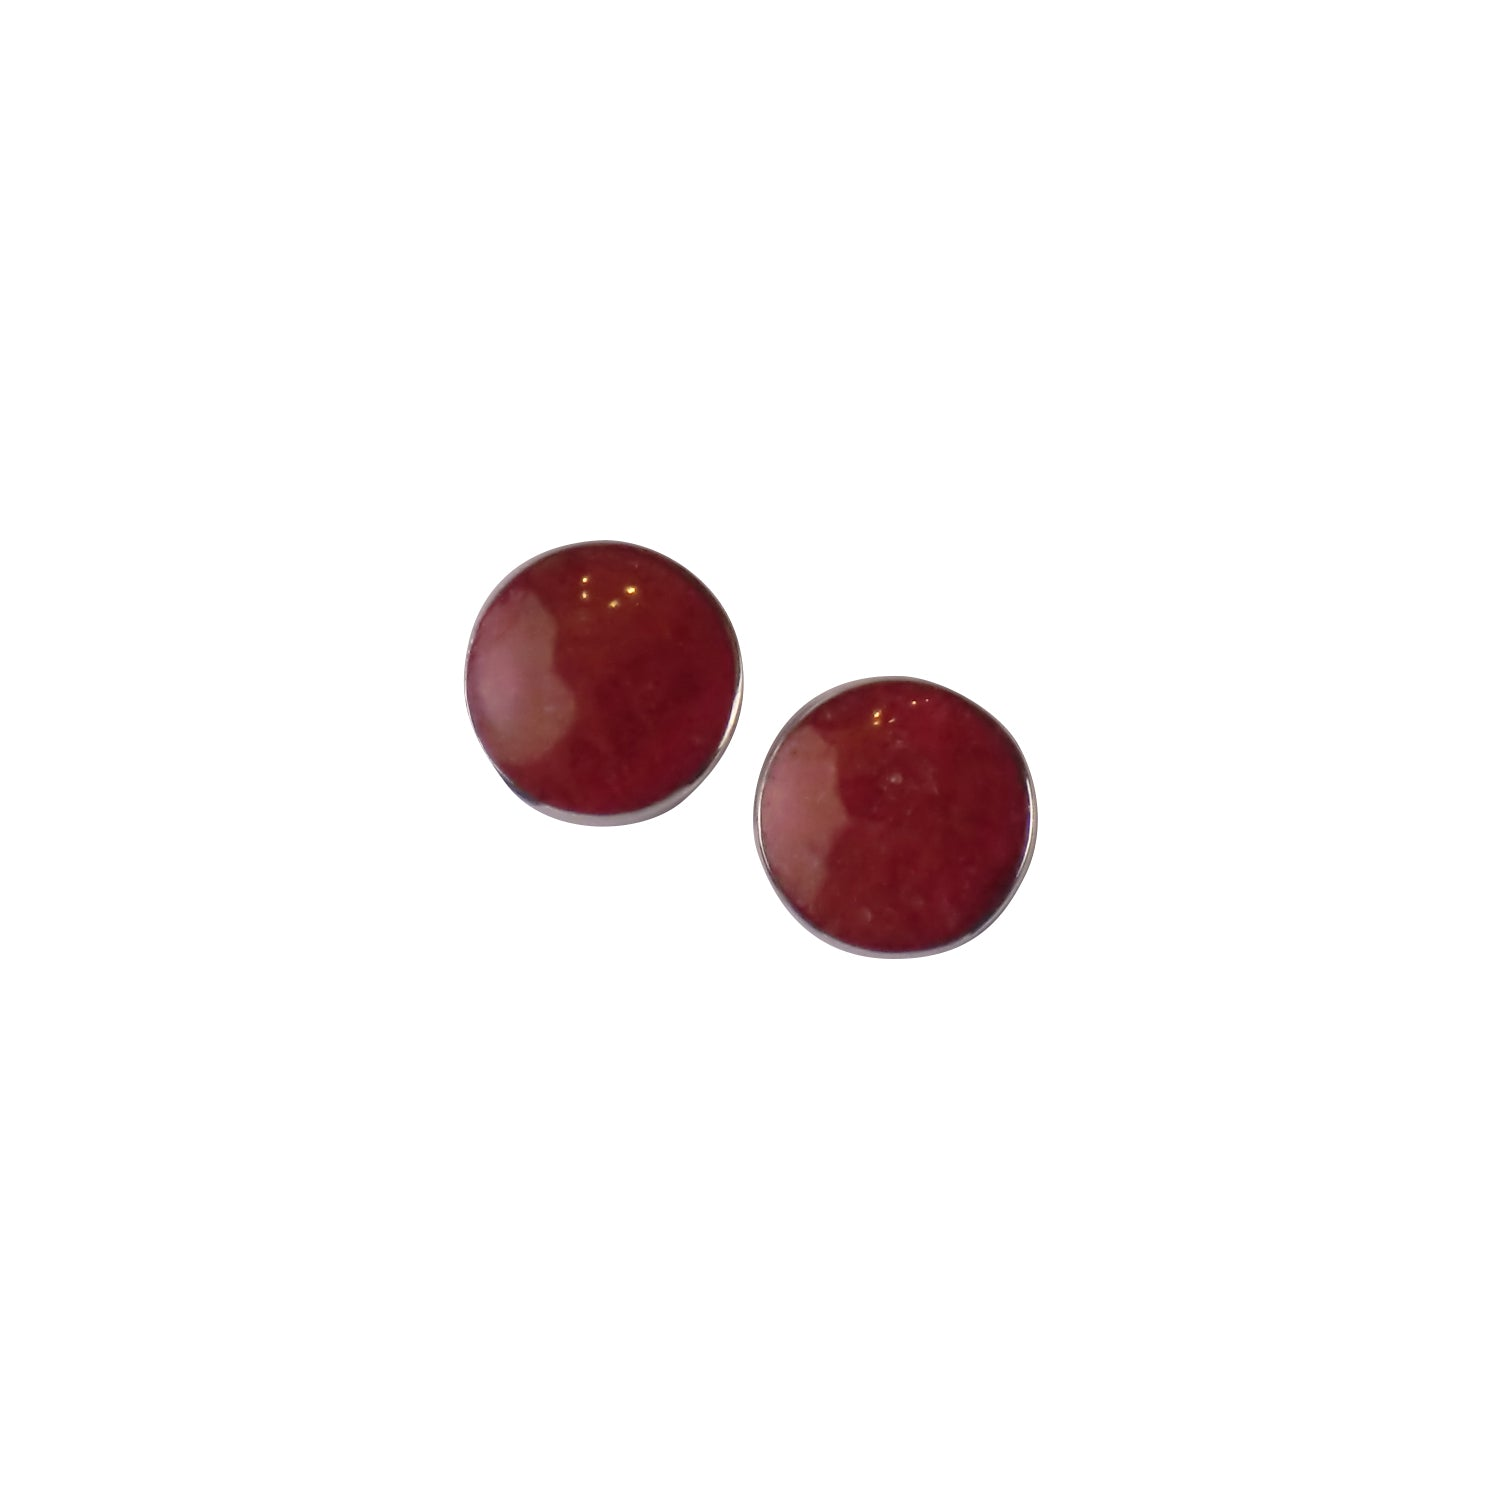 Stone Stud Earrings - Matico